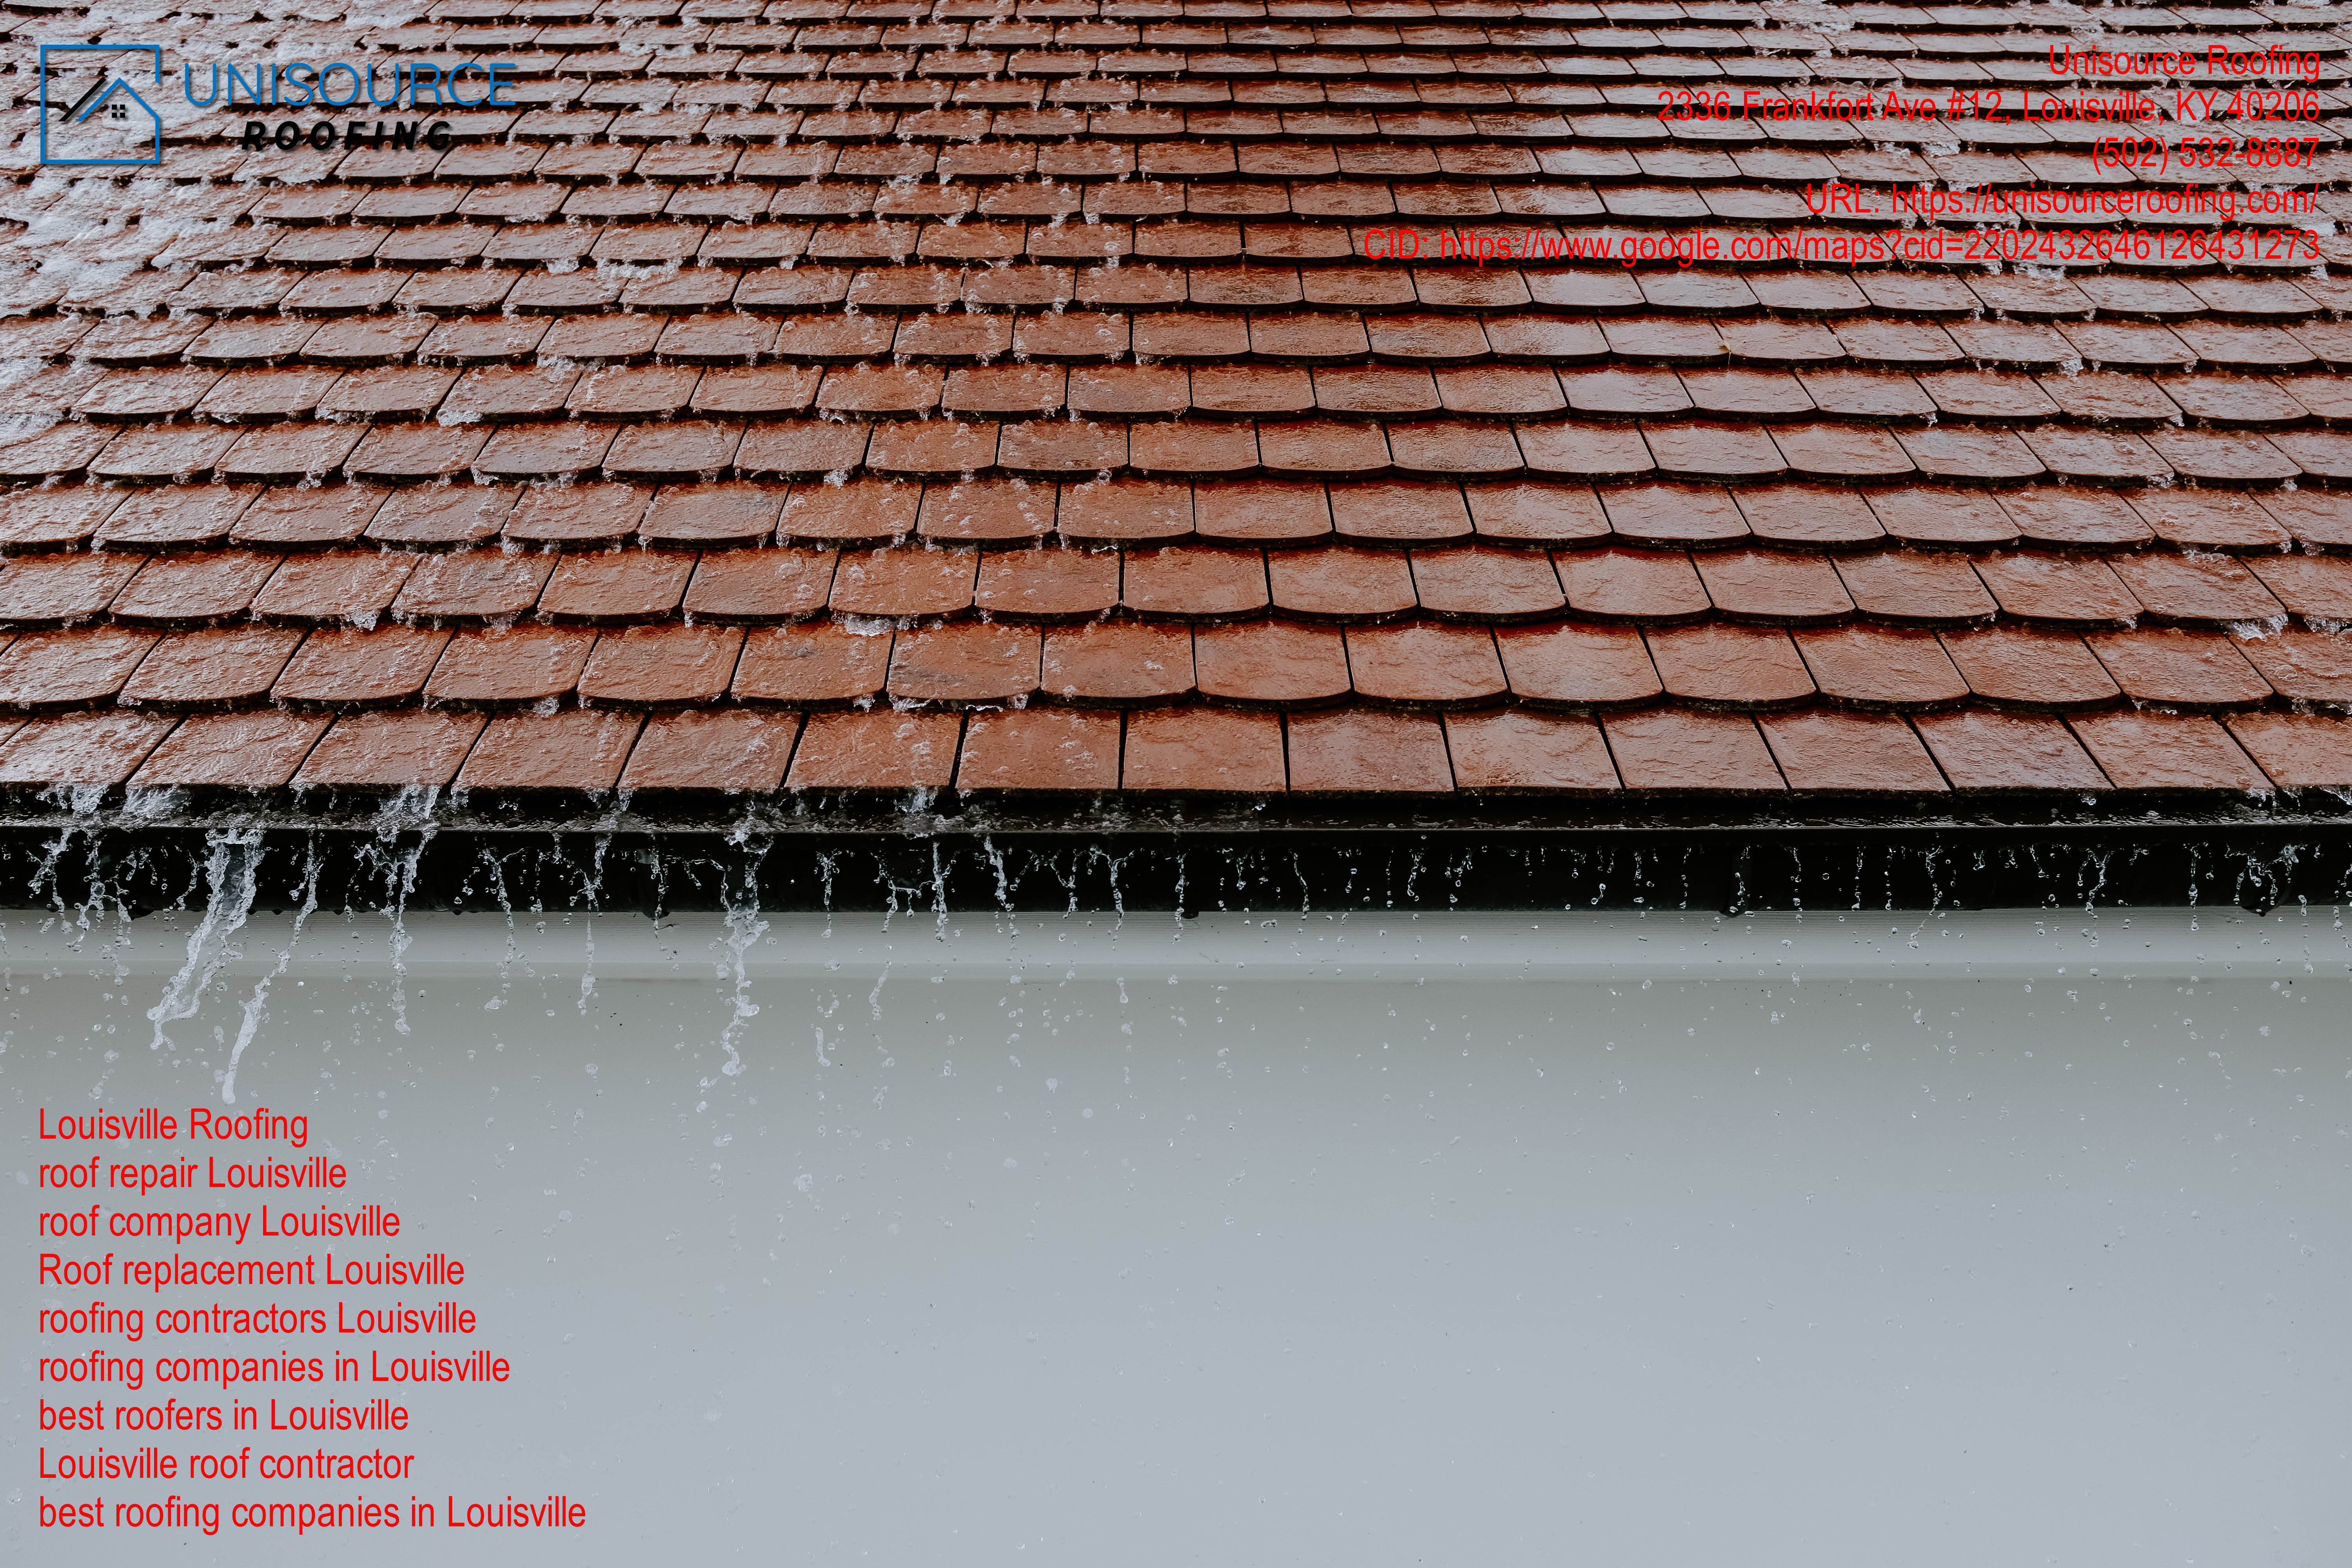 Unisource Roofing Announces Their Roofing 101 Page